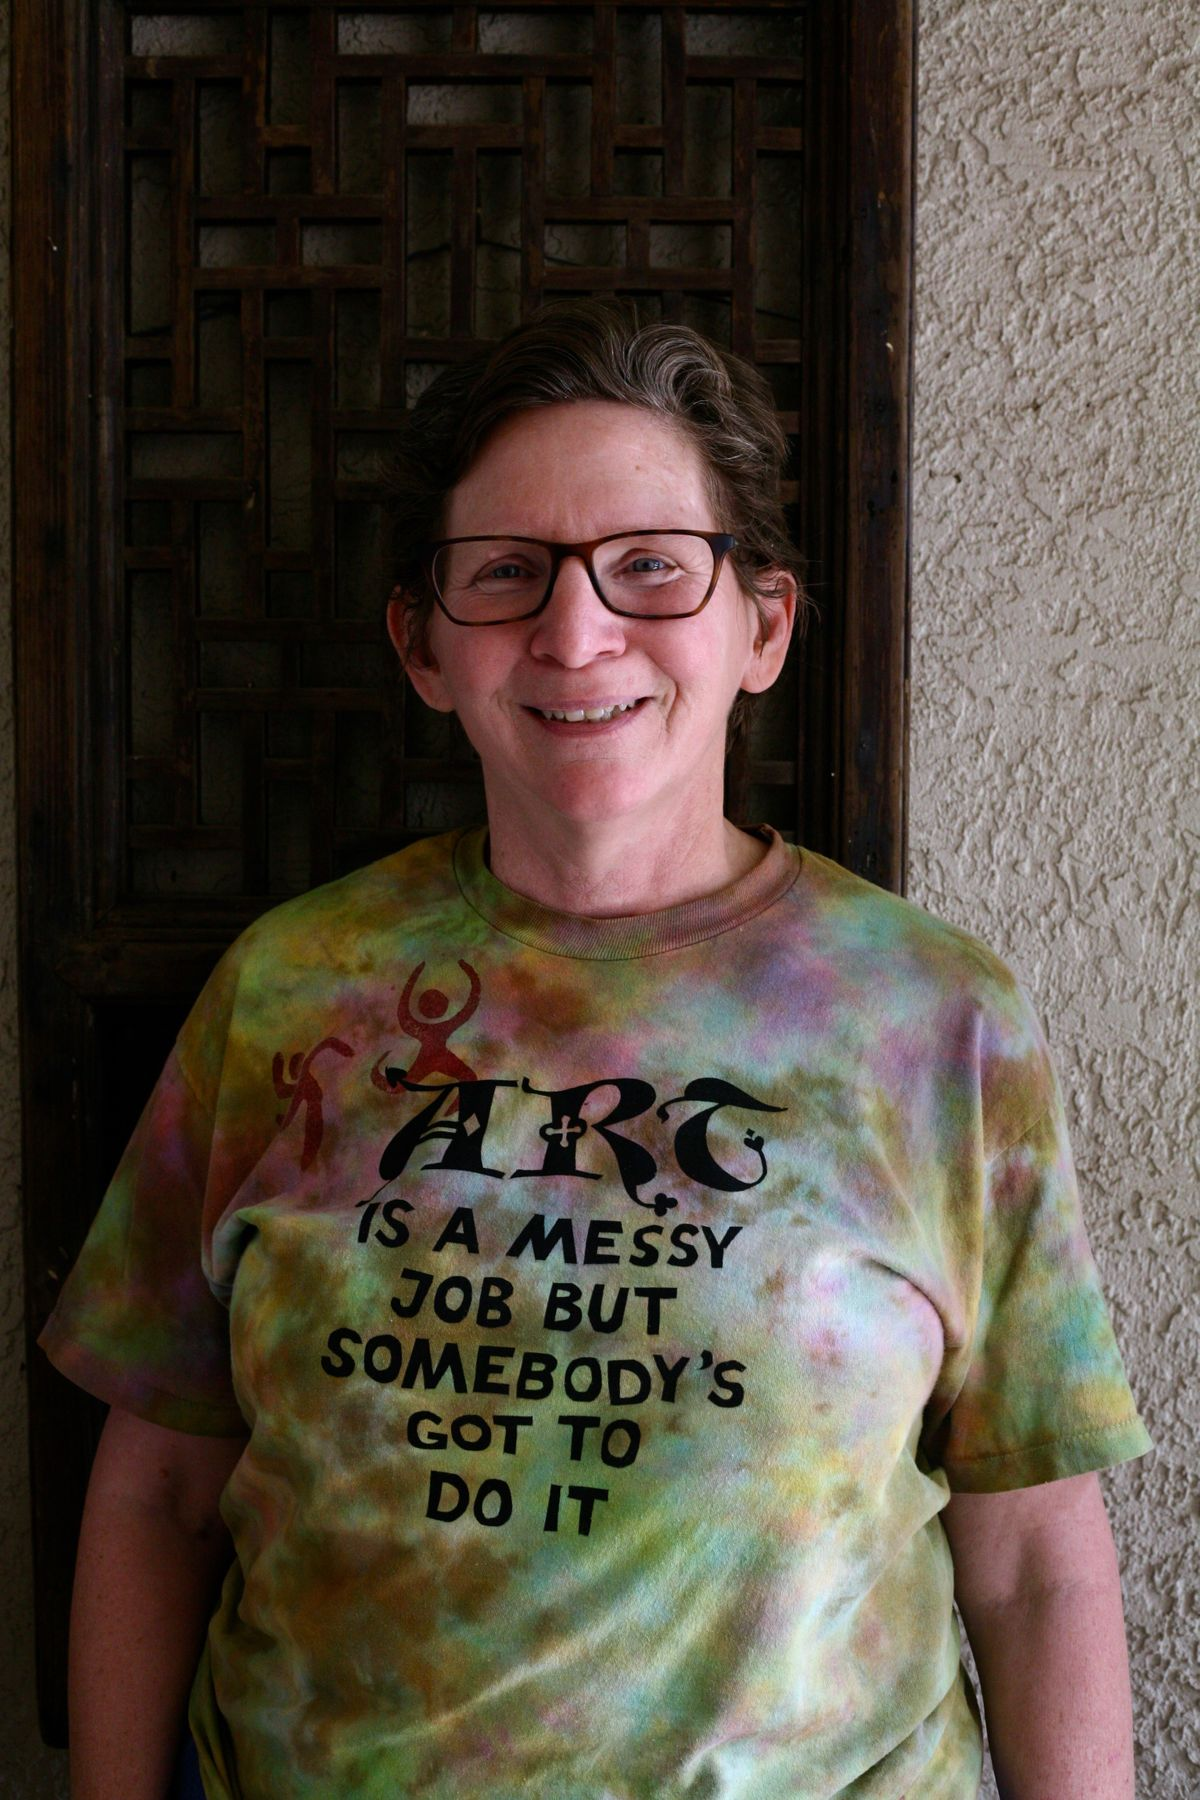 Cathy_Rylander_Photo of self_Austin Art_Austin Artist_Austin Gifts.jpg